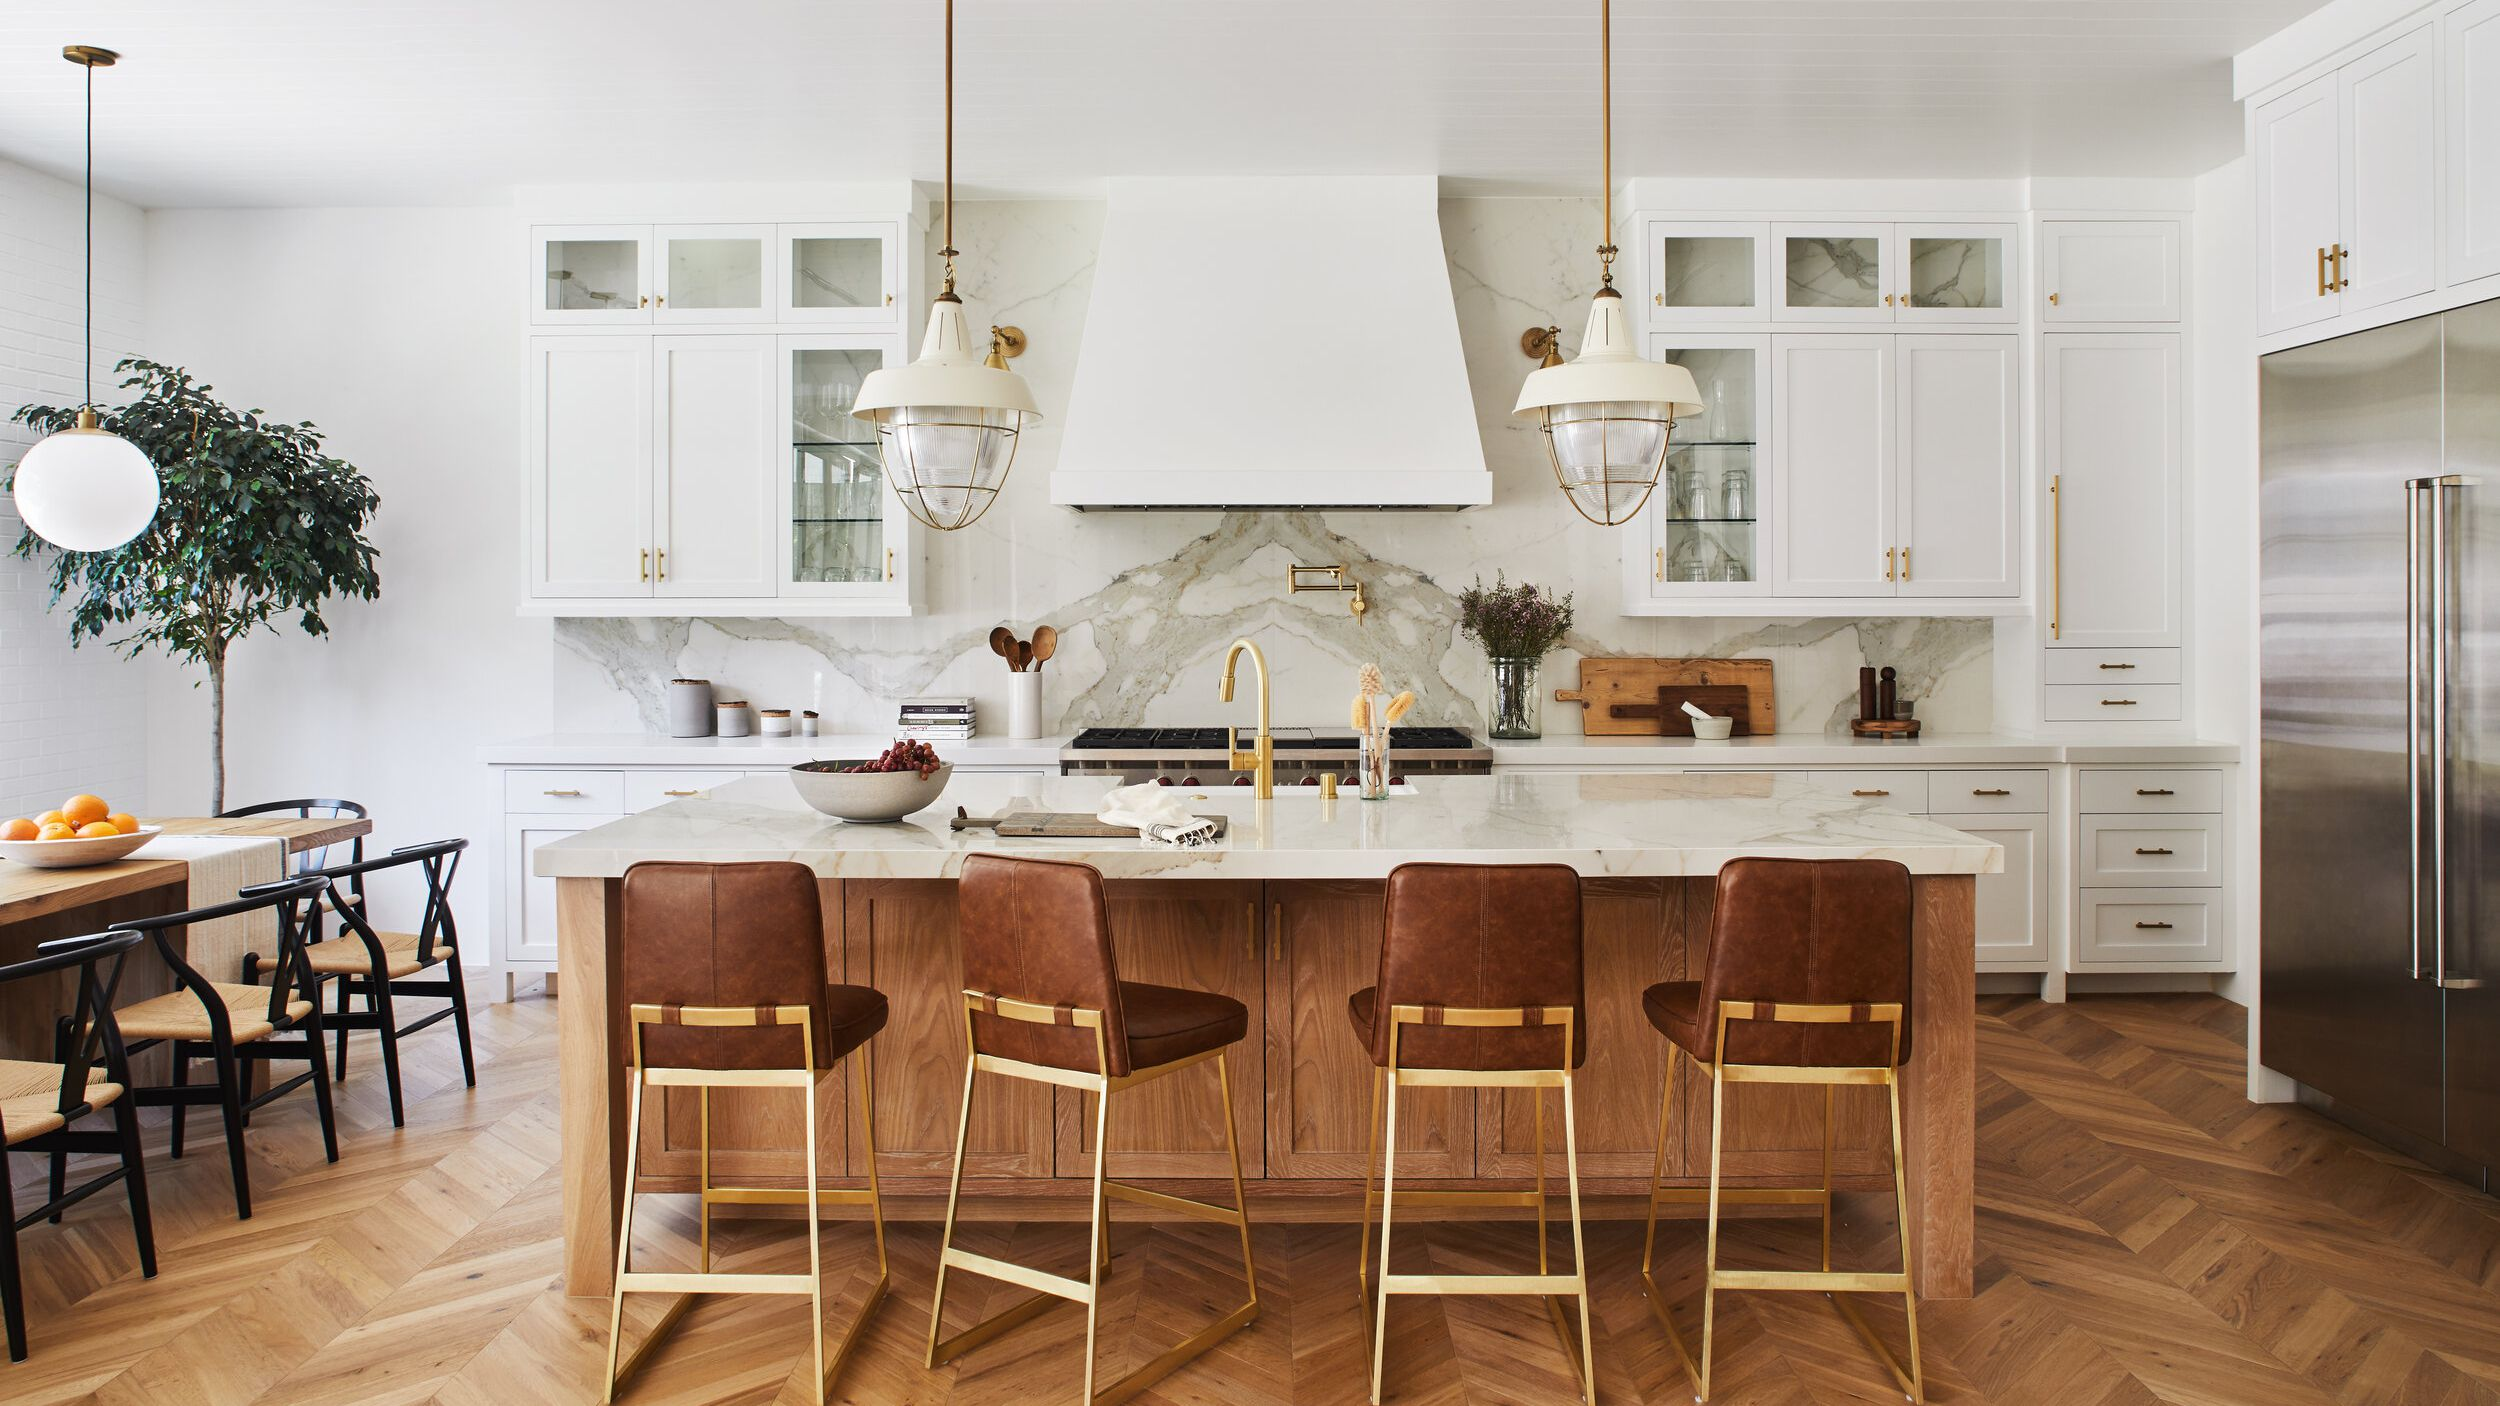 9 Open Kitchen Ideas That Are Spacious and Functional